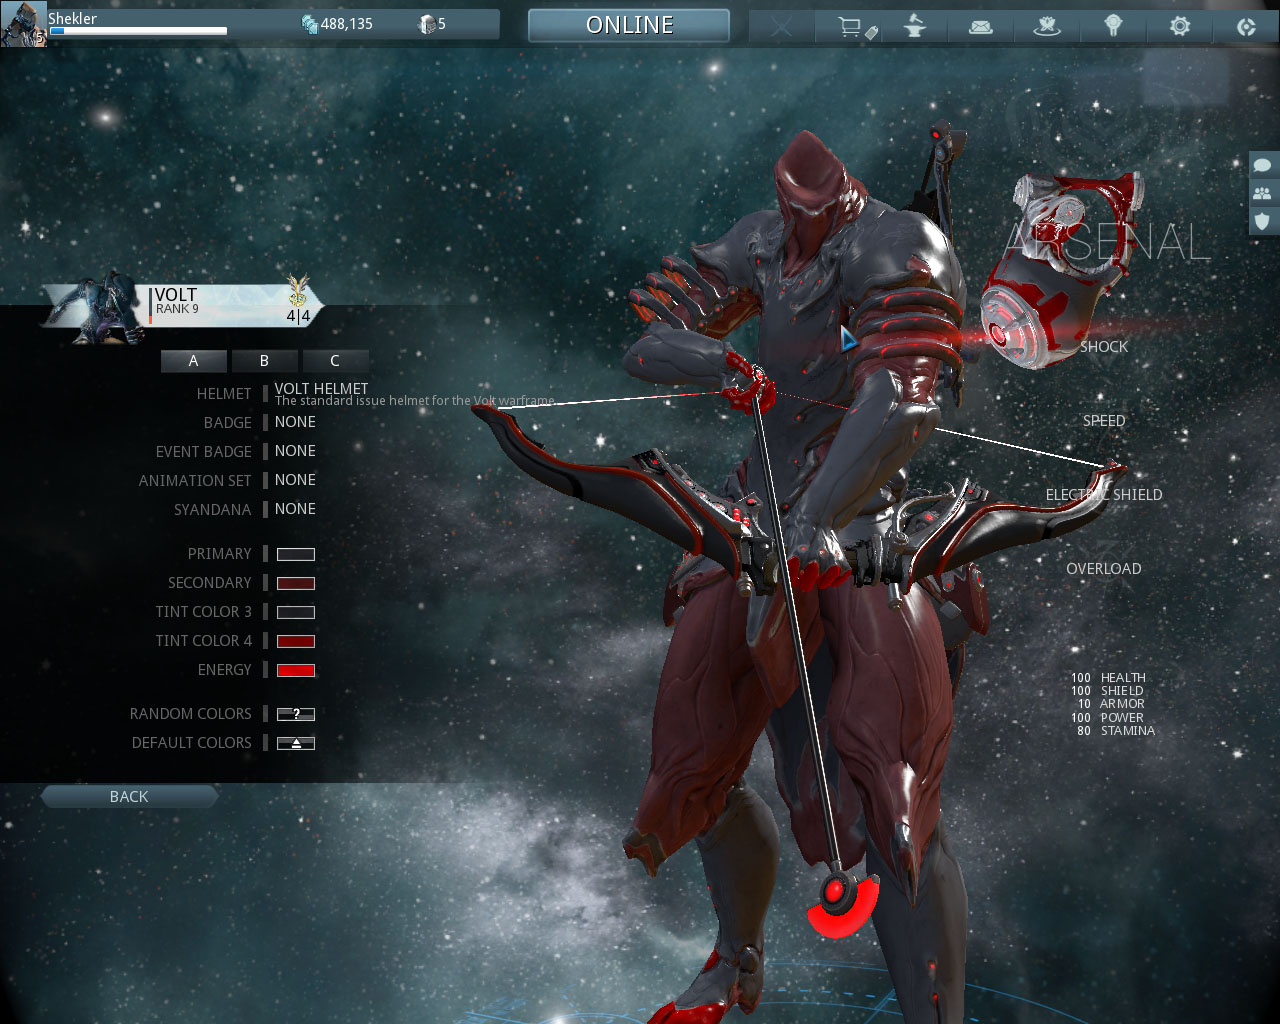 Free download Image Volt Warframe Wiki [1280x1024] for your